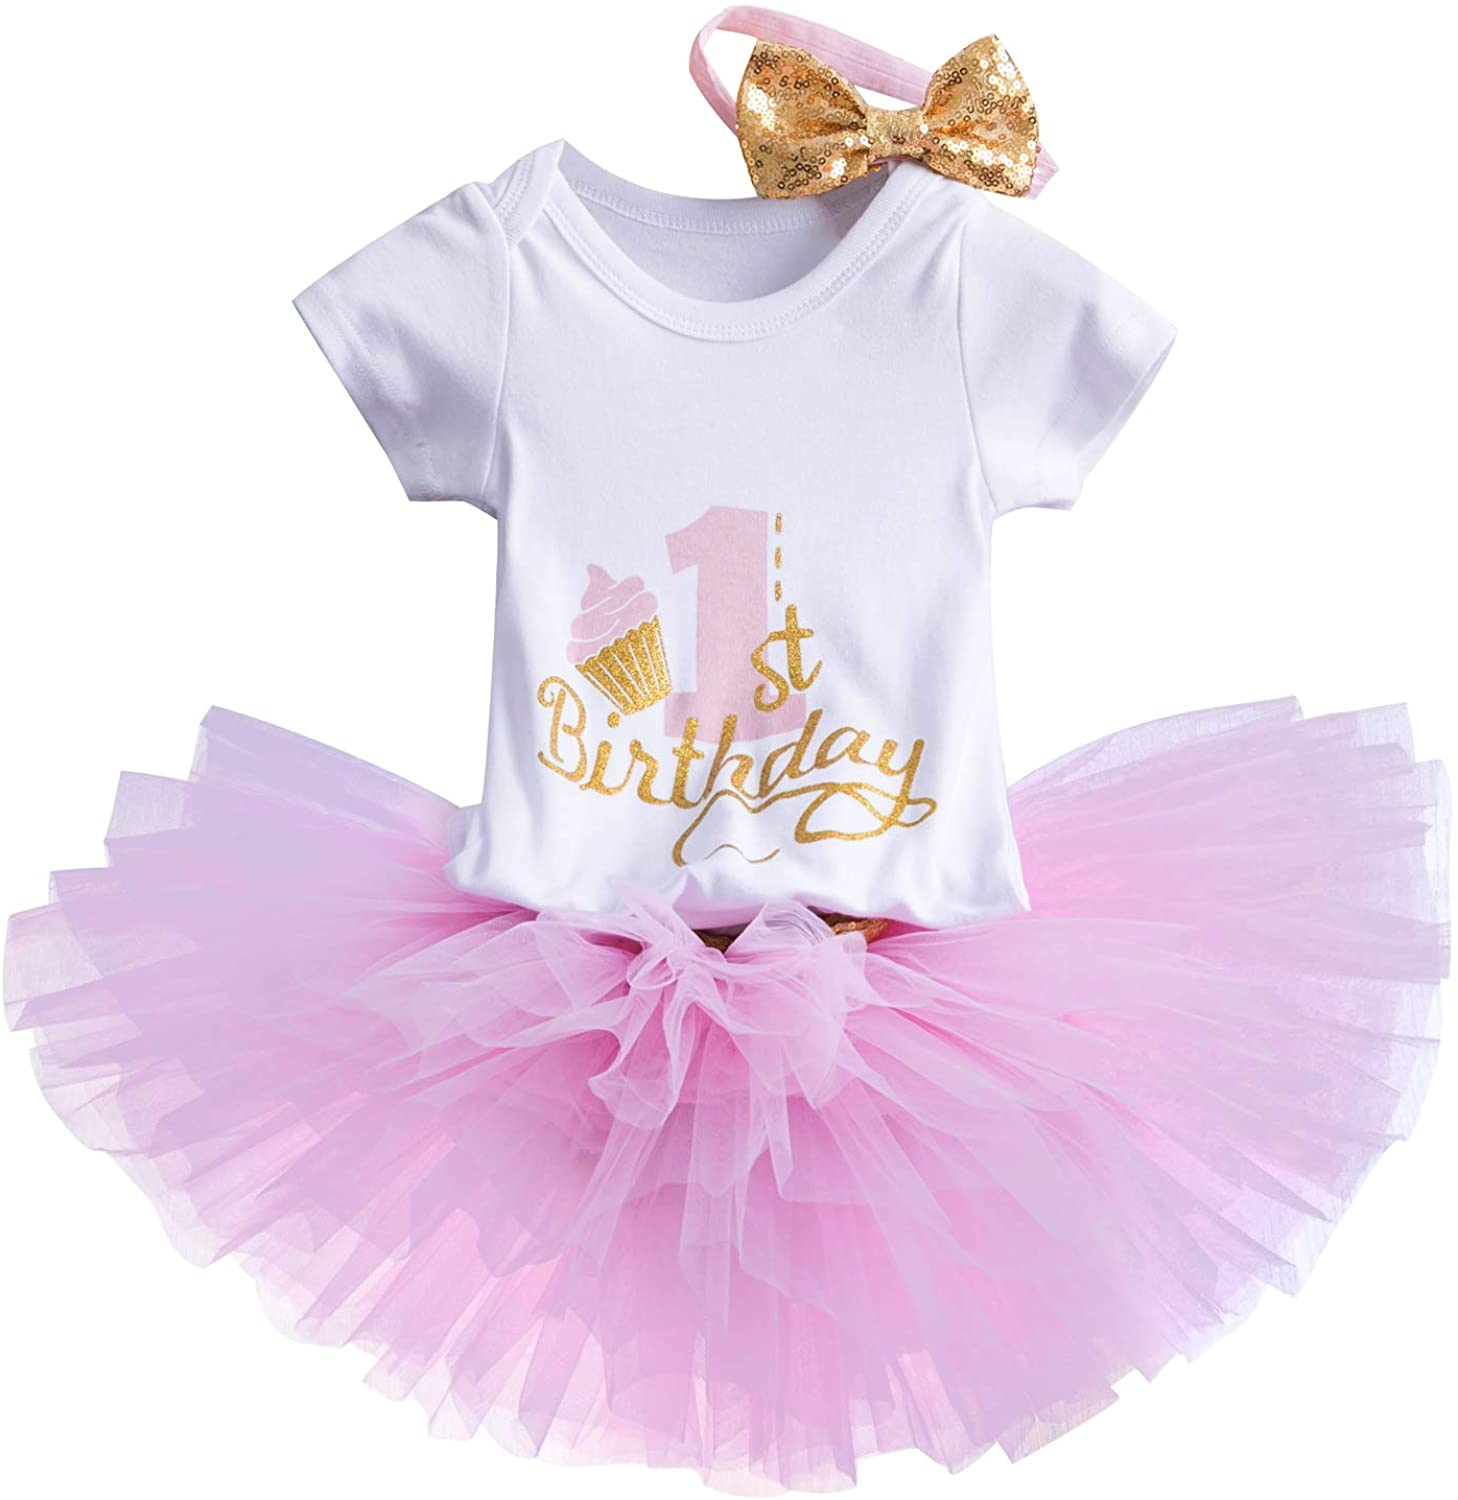 NNJXD Girl Newborn 1st Birthday 3 Pcs Outfits Romper+Tutu Dress+Headband (Pink# 1Years